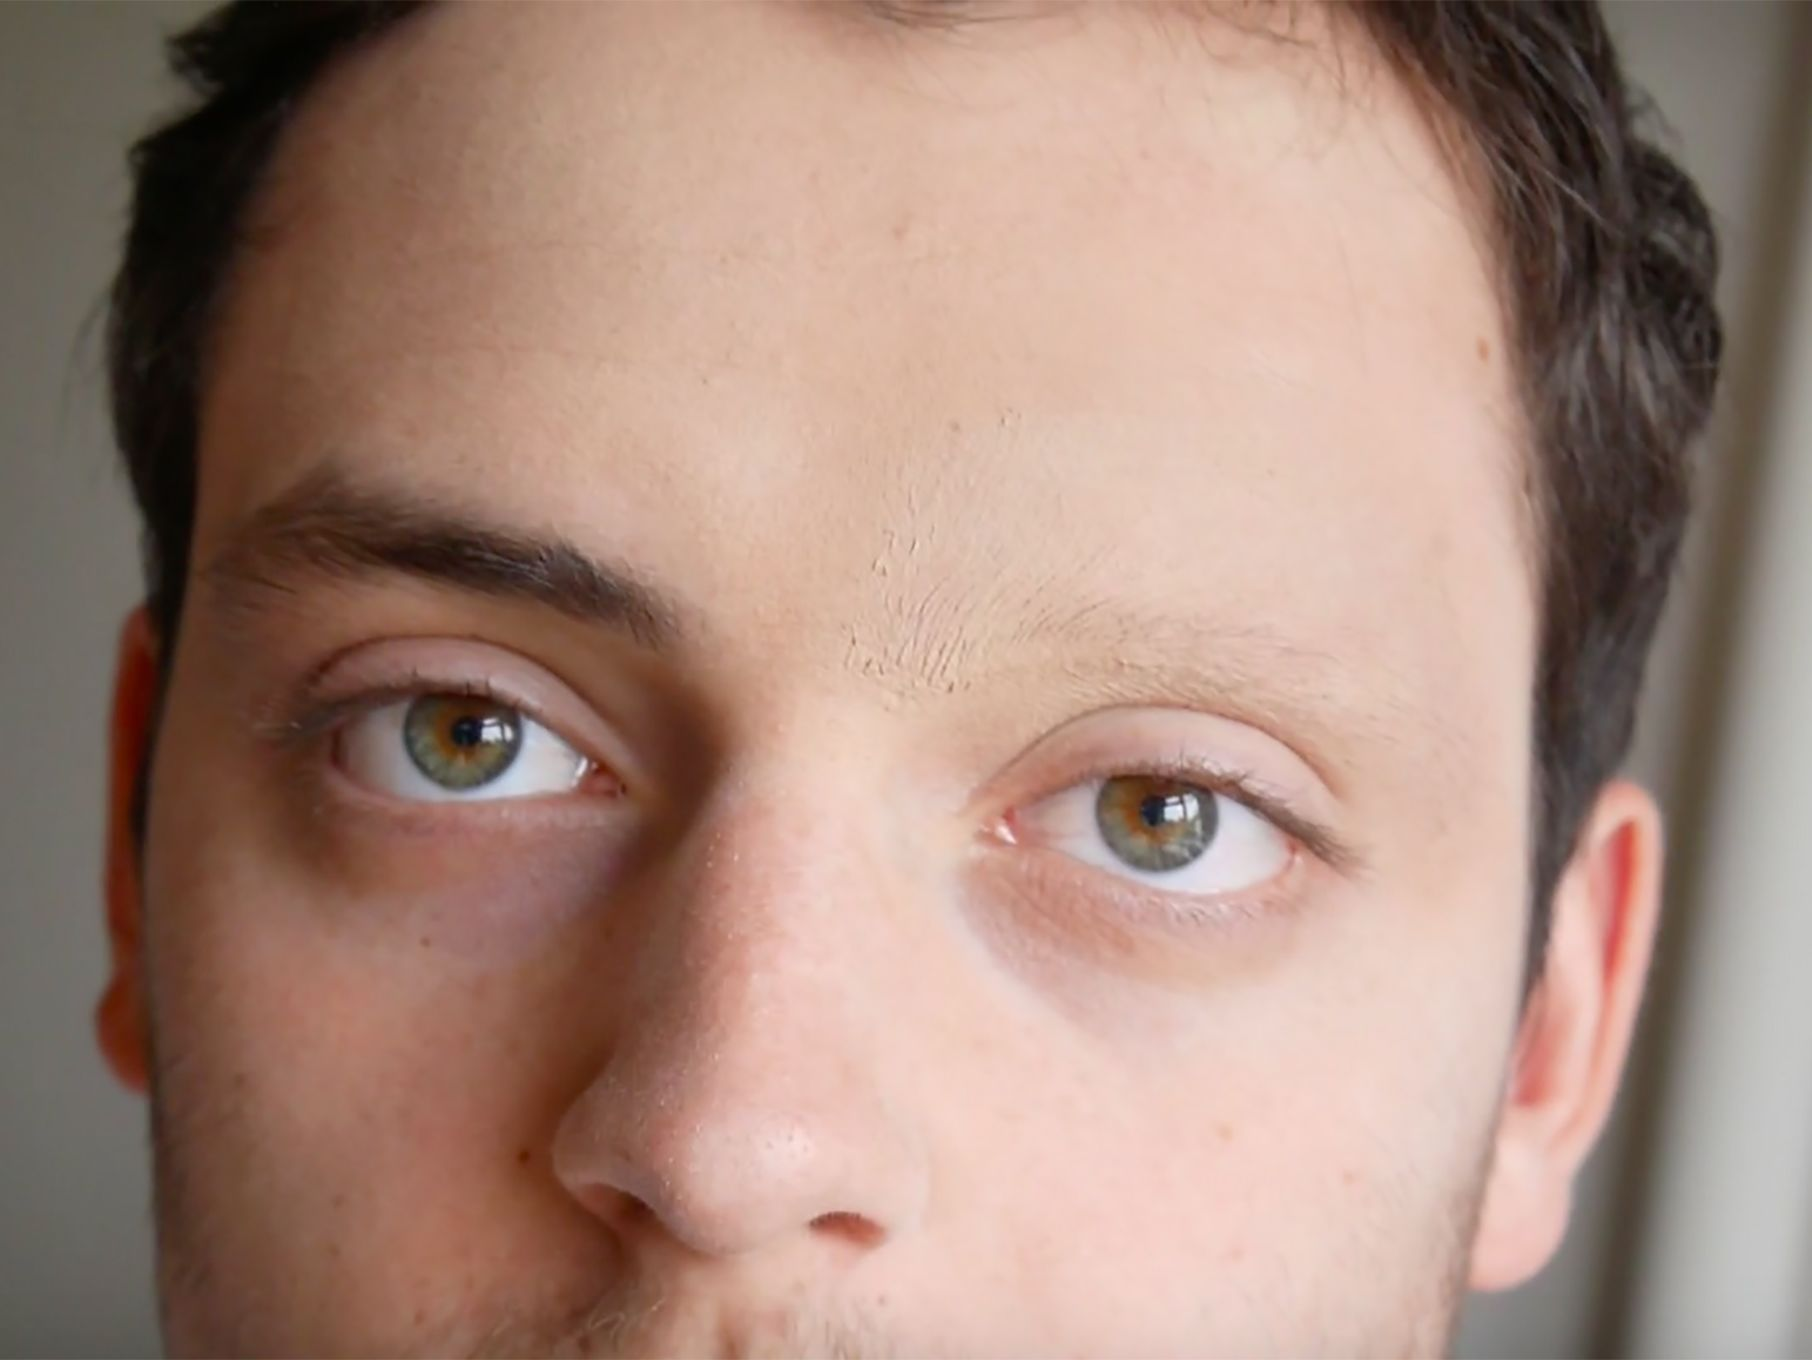 a close-up portrait of a person with one eyebrow missing